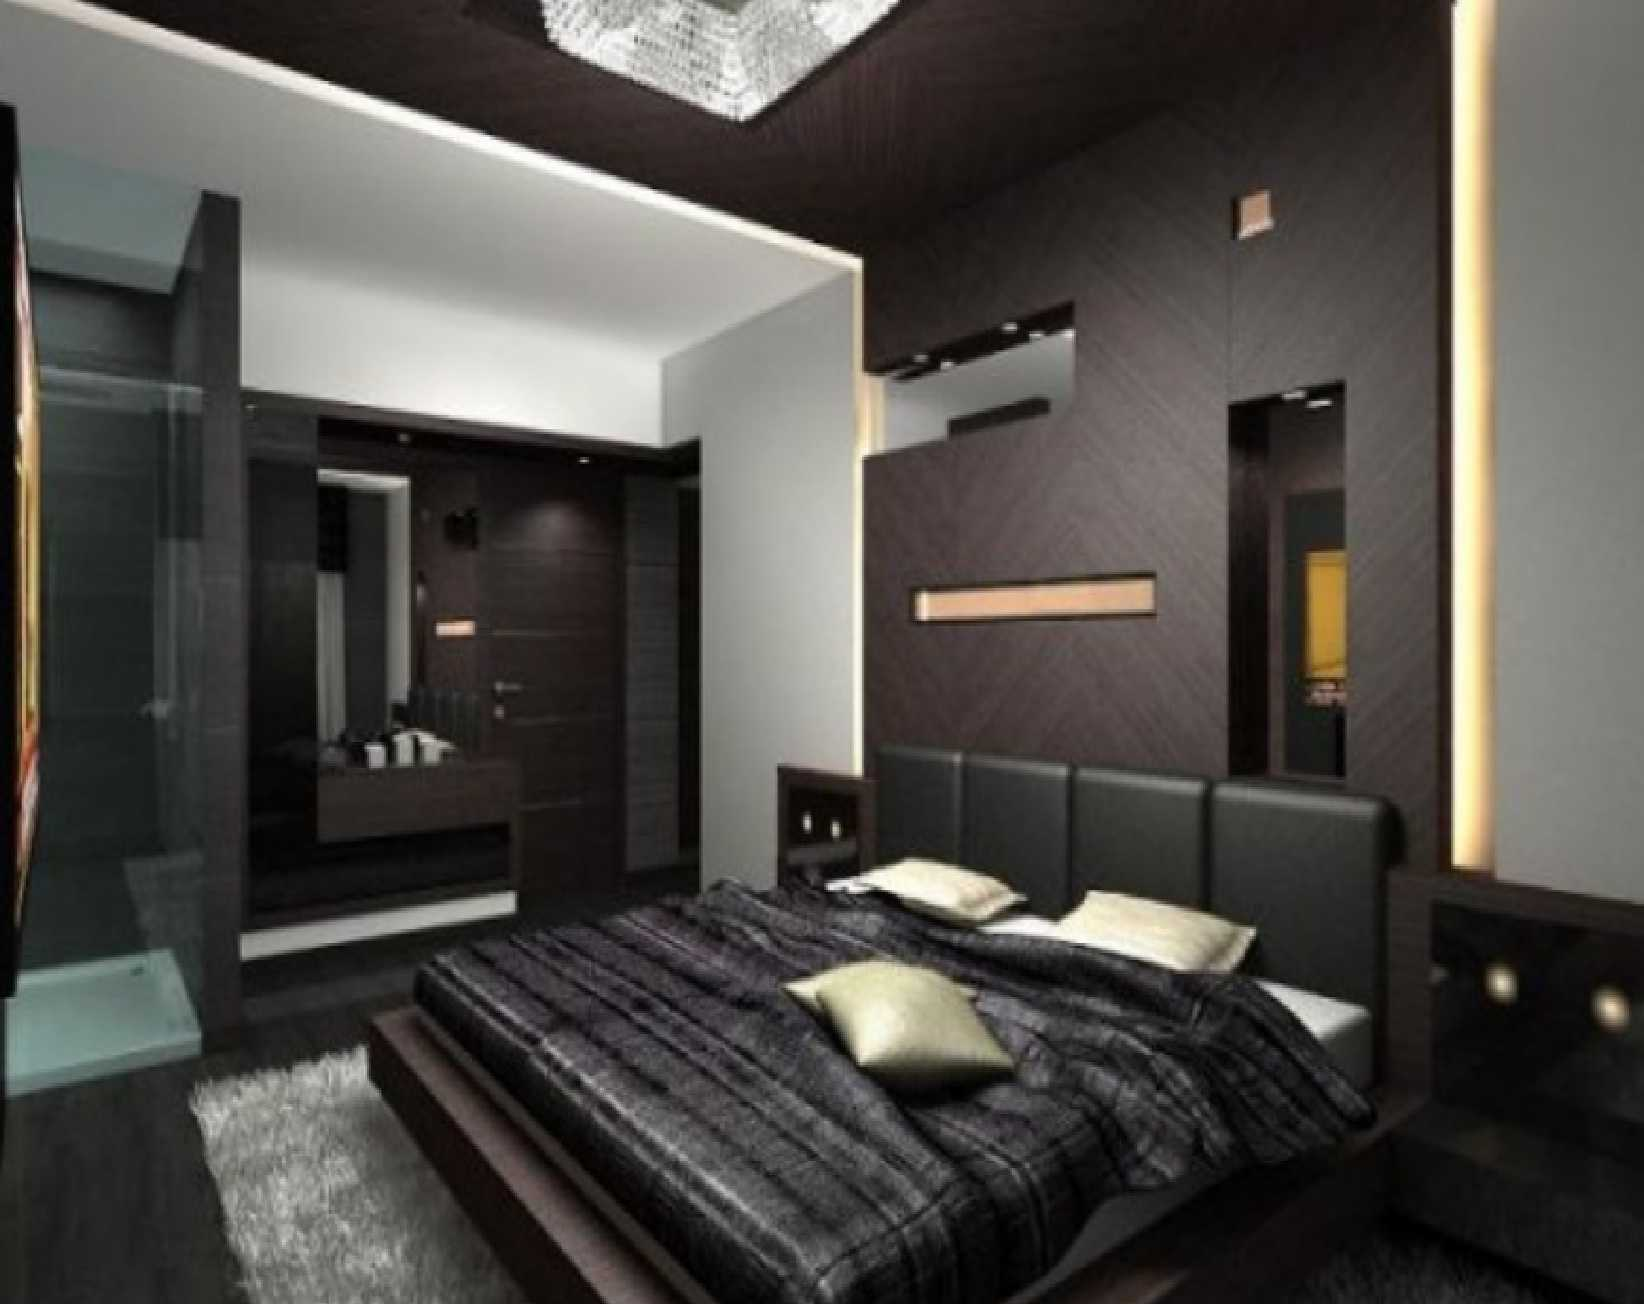 Interior Design Black interior design bedroom black furniture | interior & exterior doors